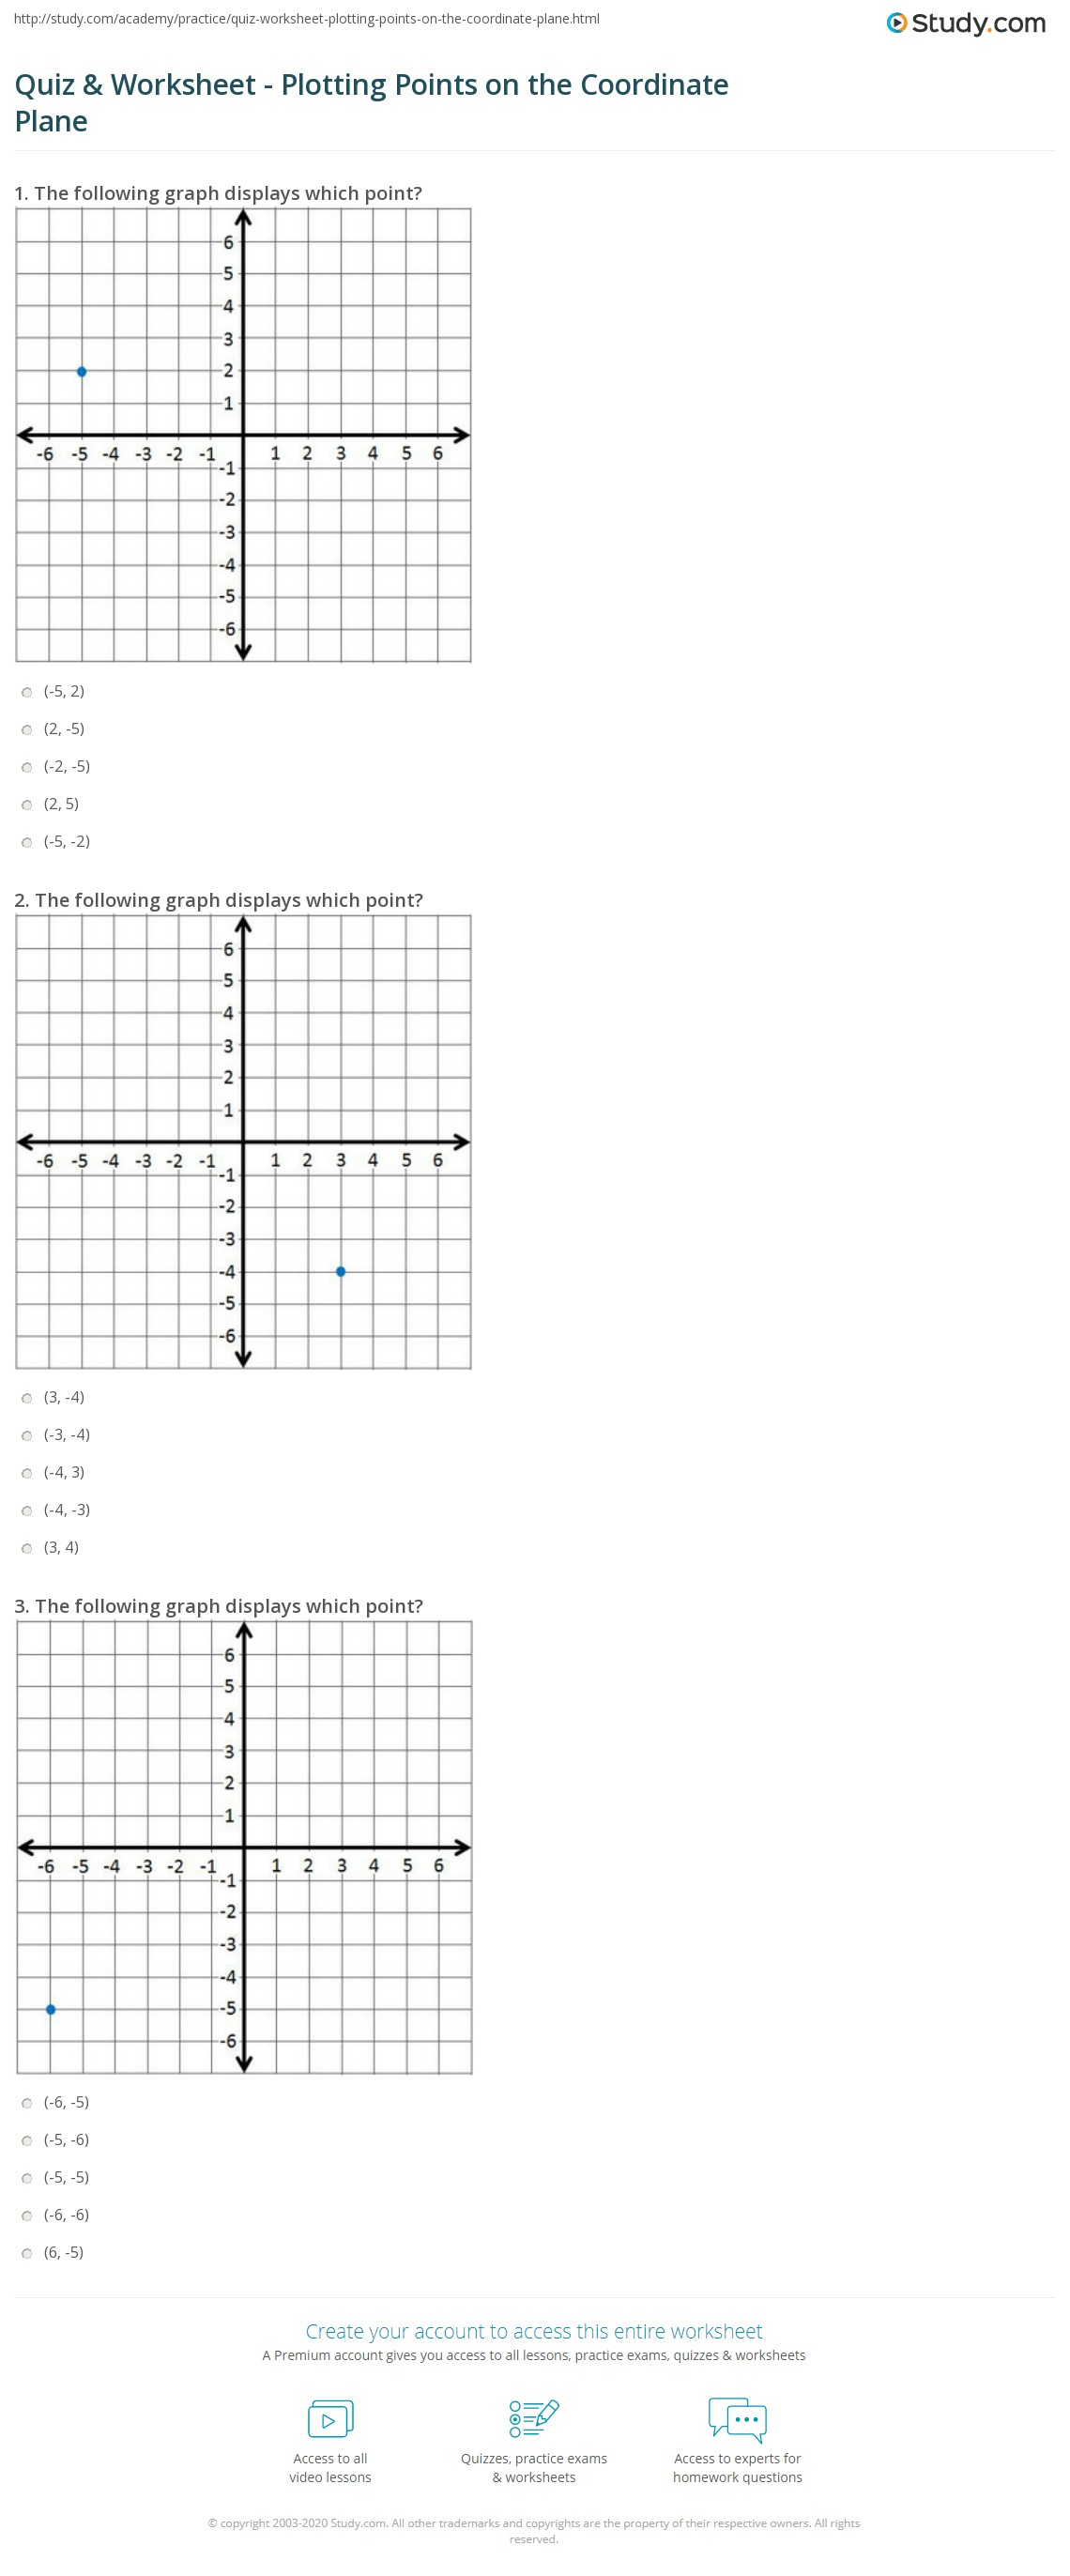 worksheet Positive Coordinate Grid quiz worksheet plotting points on the coordinate plane study com print worksheet